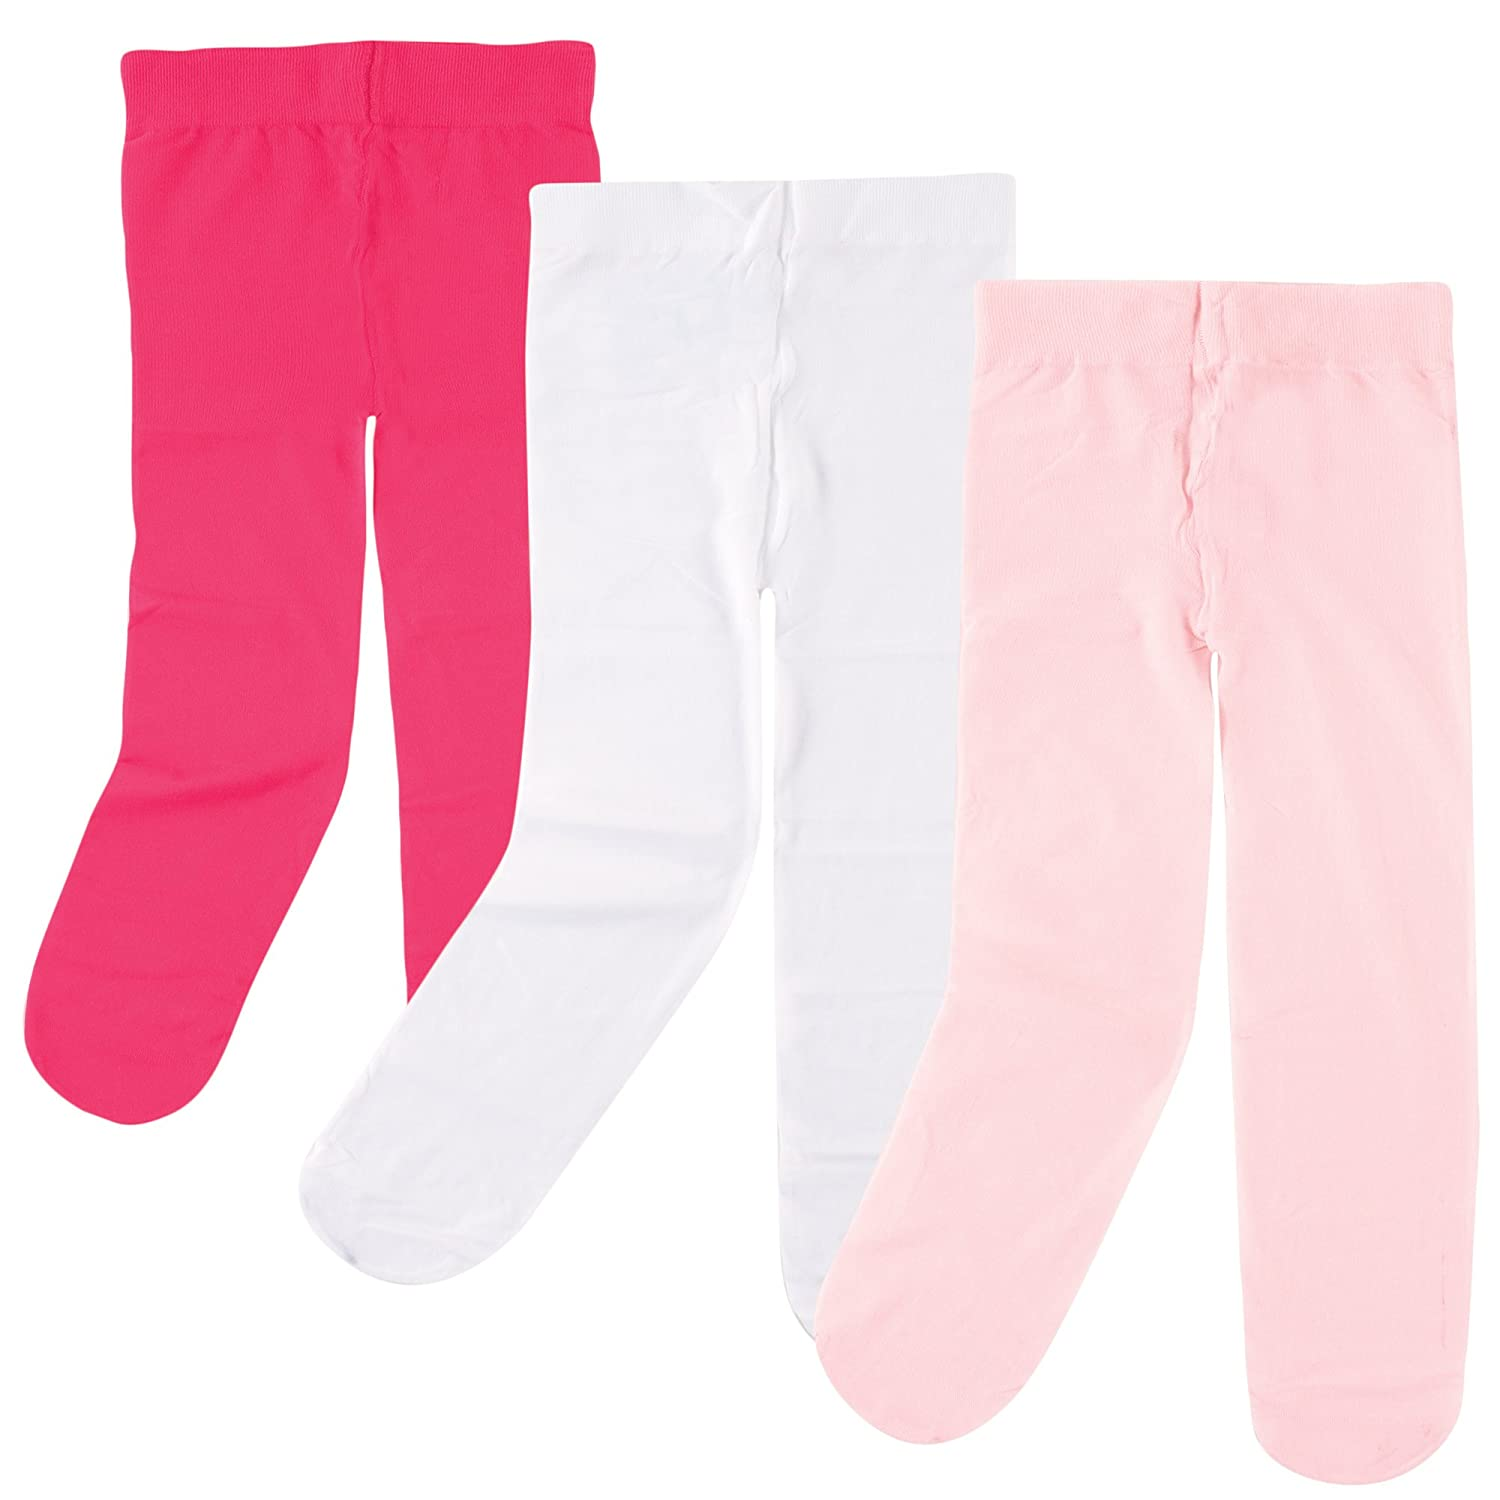 Luvable Friends baby-girls Baby Nylon Tights, 3 Pack 1505